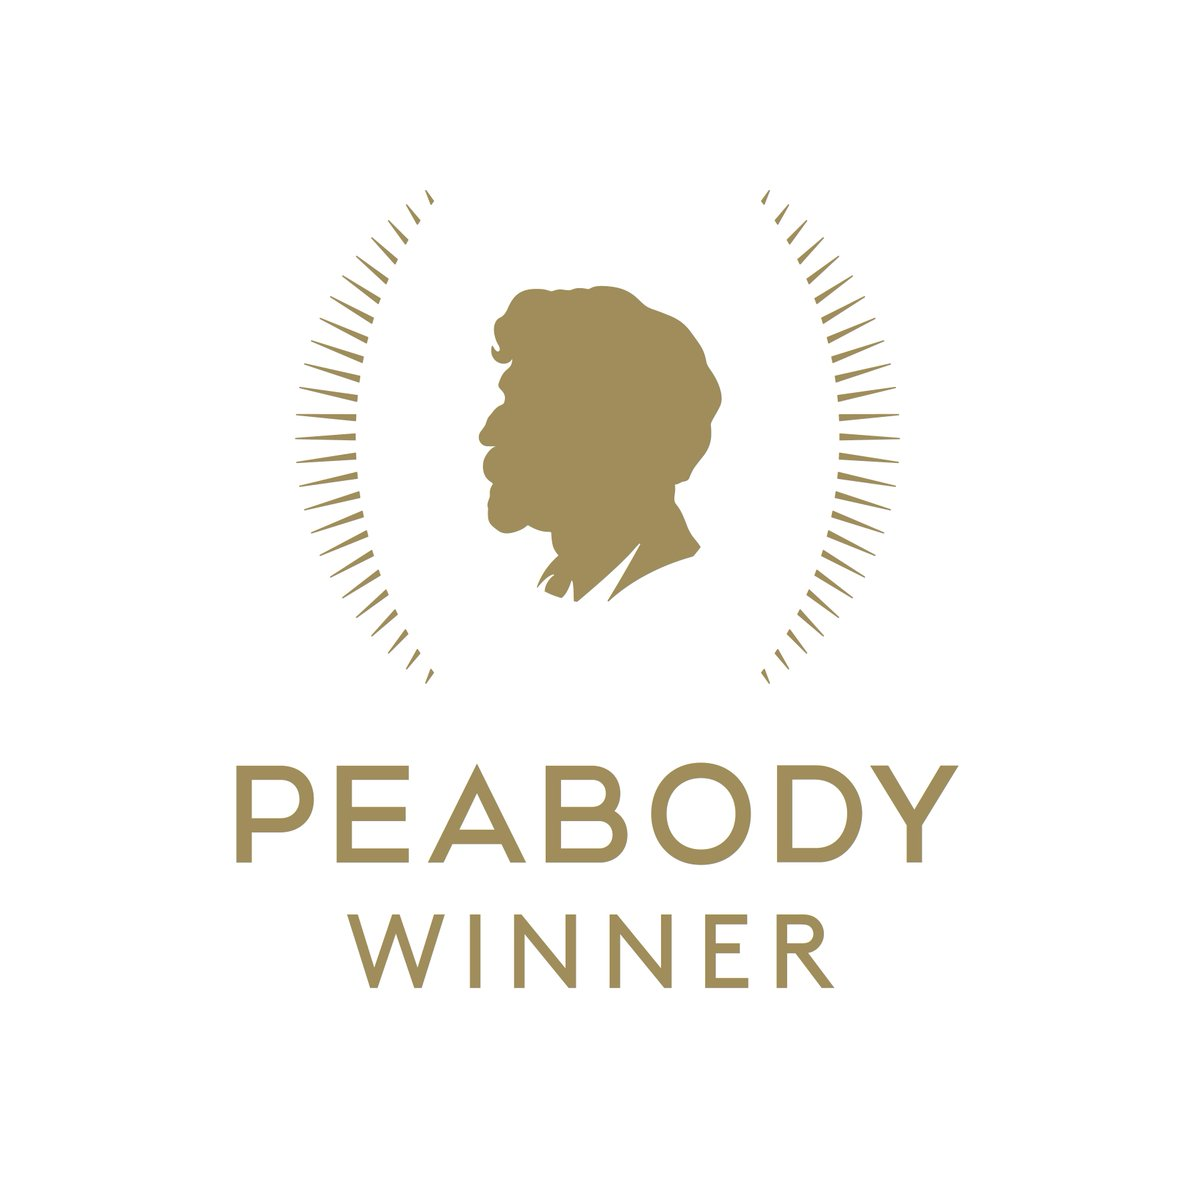 WOW @Channel4News has won a @PeabodyAwards for news (our 1st) after record breaking 7 RTS Awards congrats to all especially @jobrabkin @guybasnett @EdHowker @pyleighstudio @agliggett @NevMab @adavies4 @C4KylieM & *special reporter (undercover) & thanks to our @observer partners